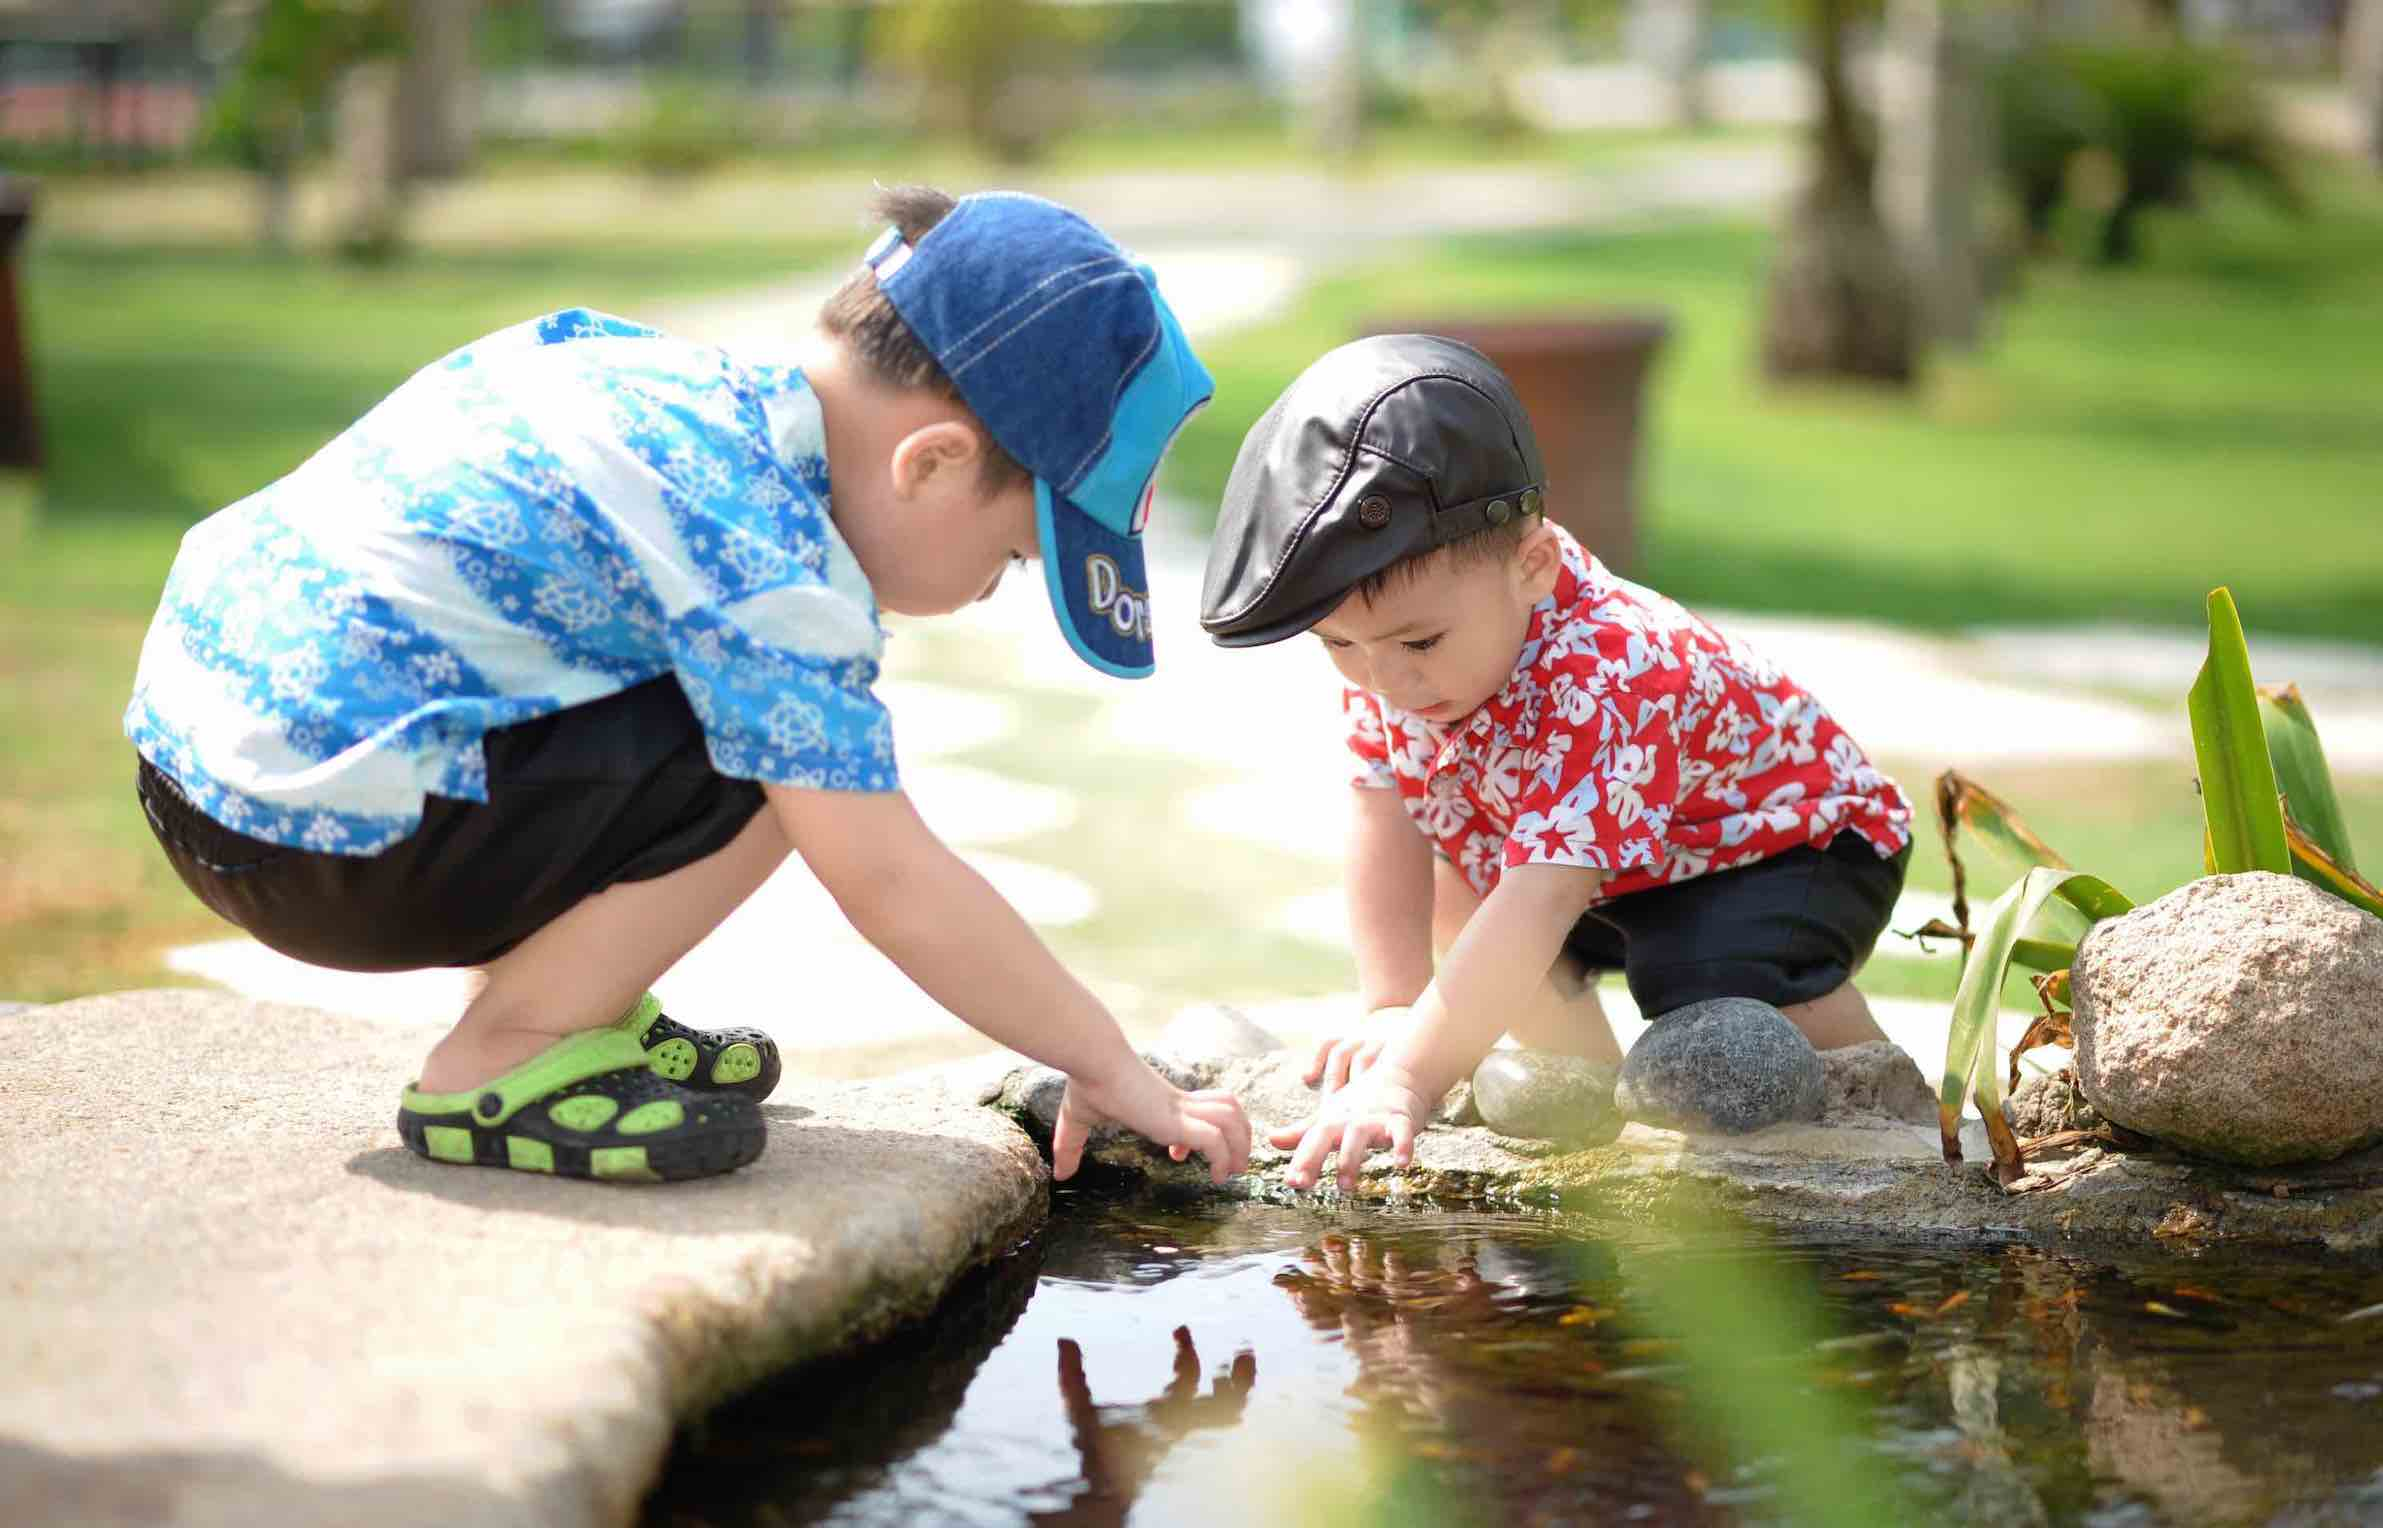 Fun kids activities in Pune, Hyderabad, Ahmedabad & Bangalore under Rs 100